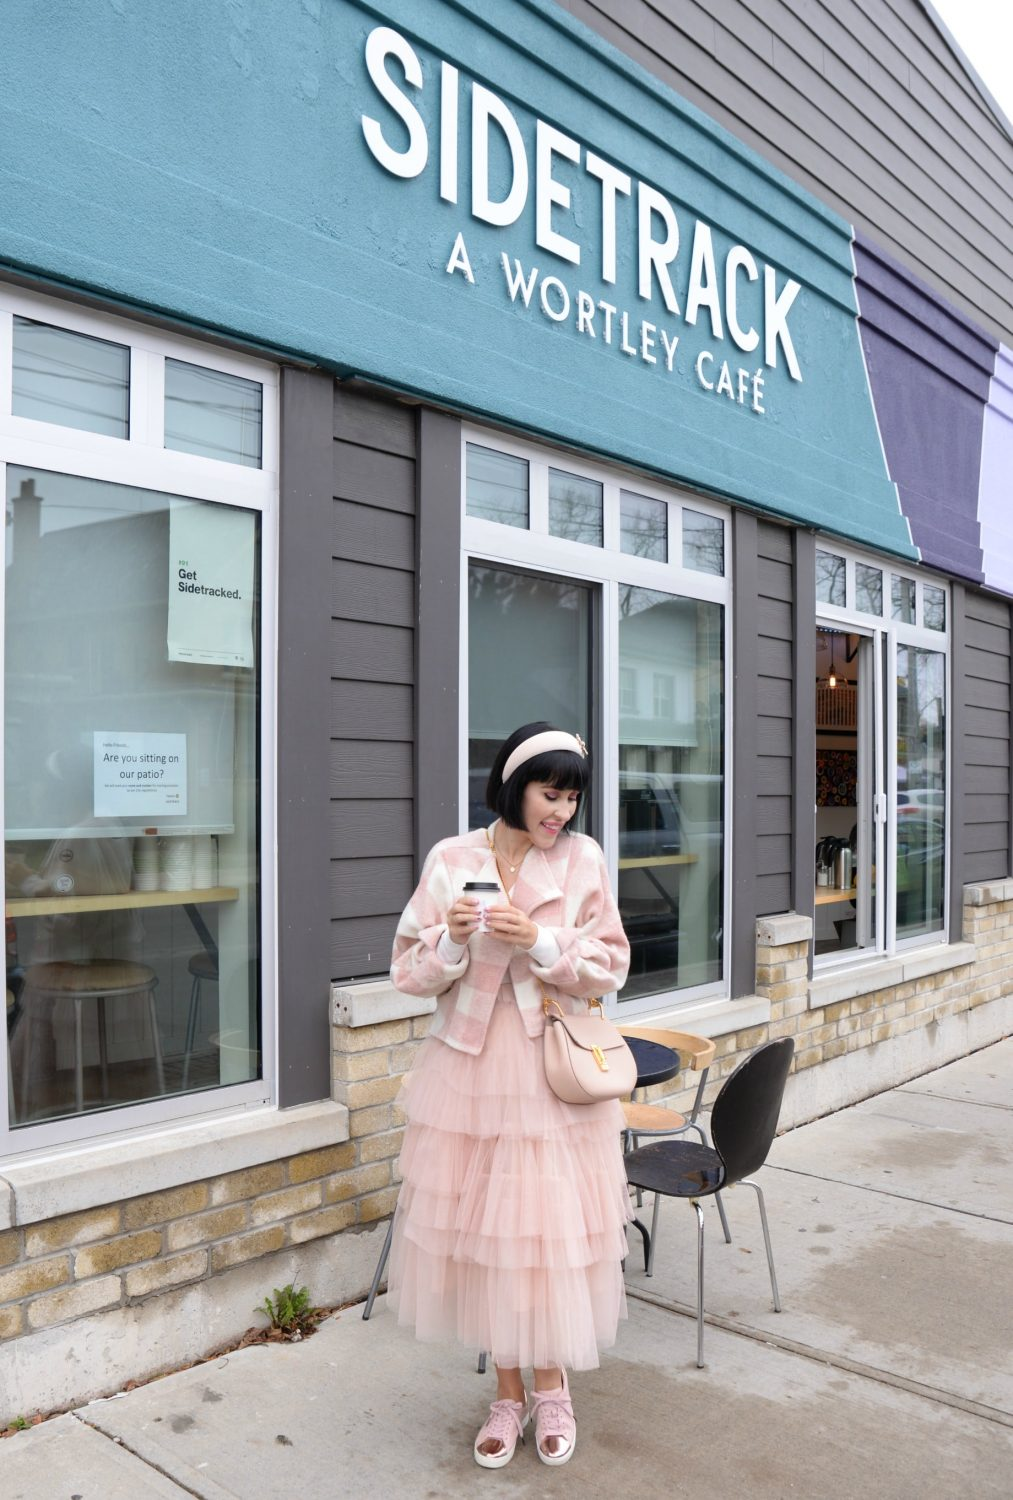 Sidetrack: A Wortley Café